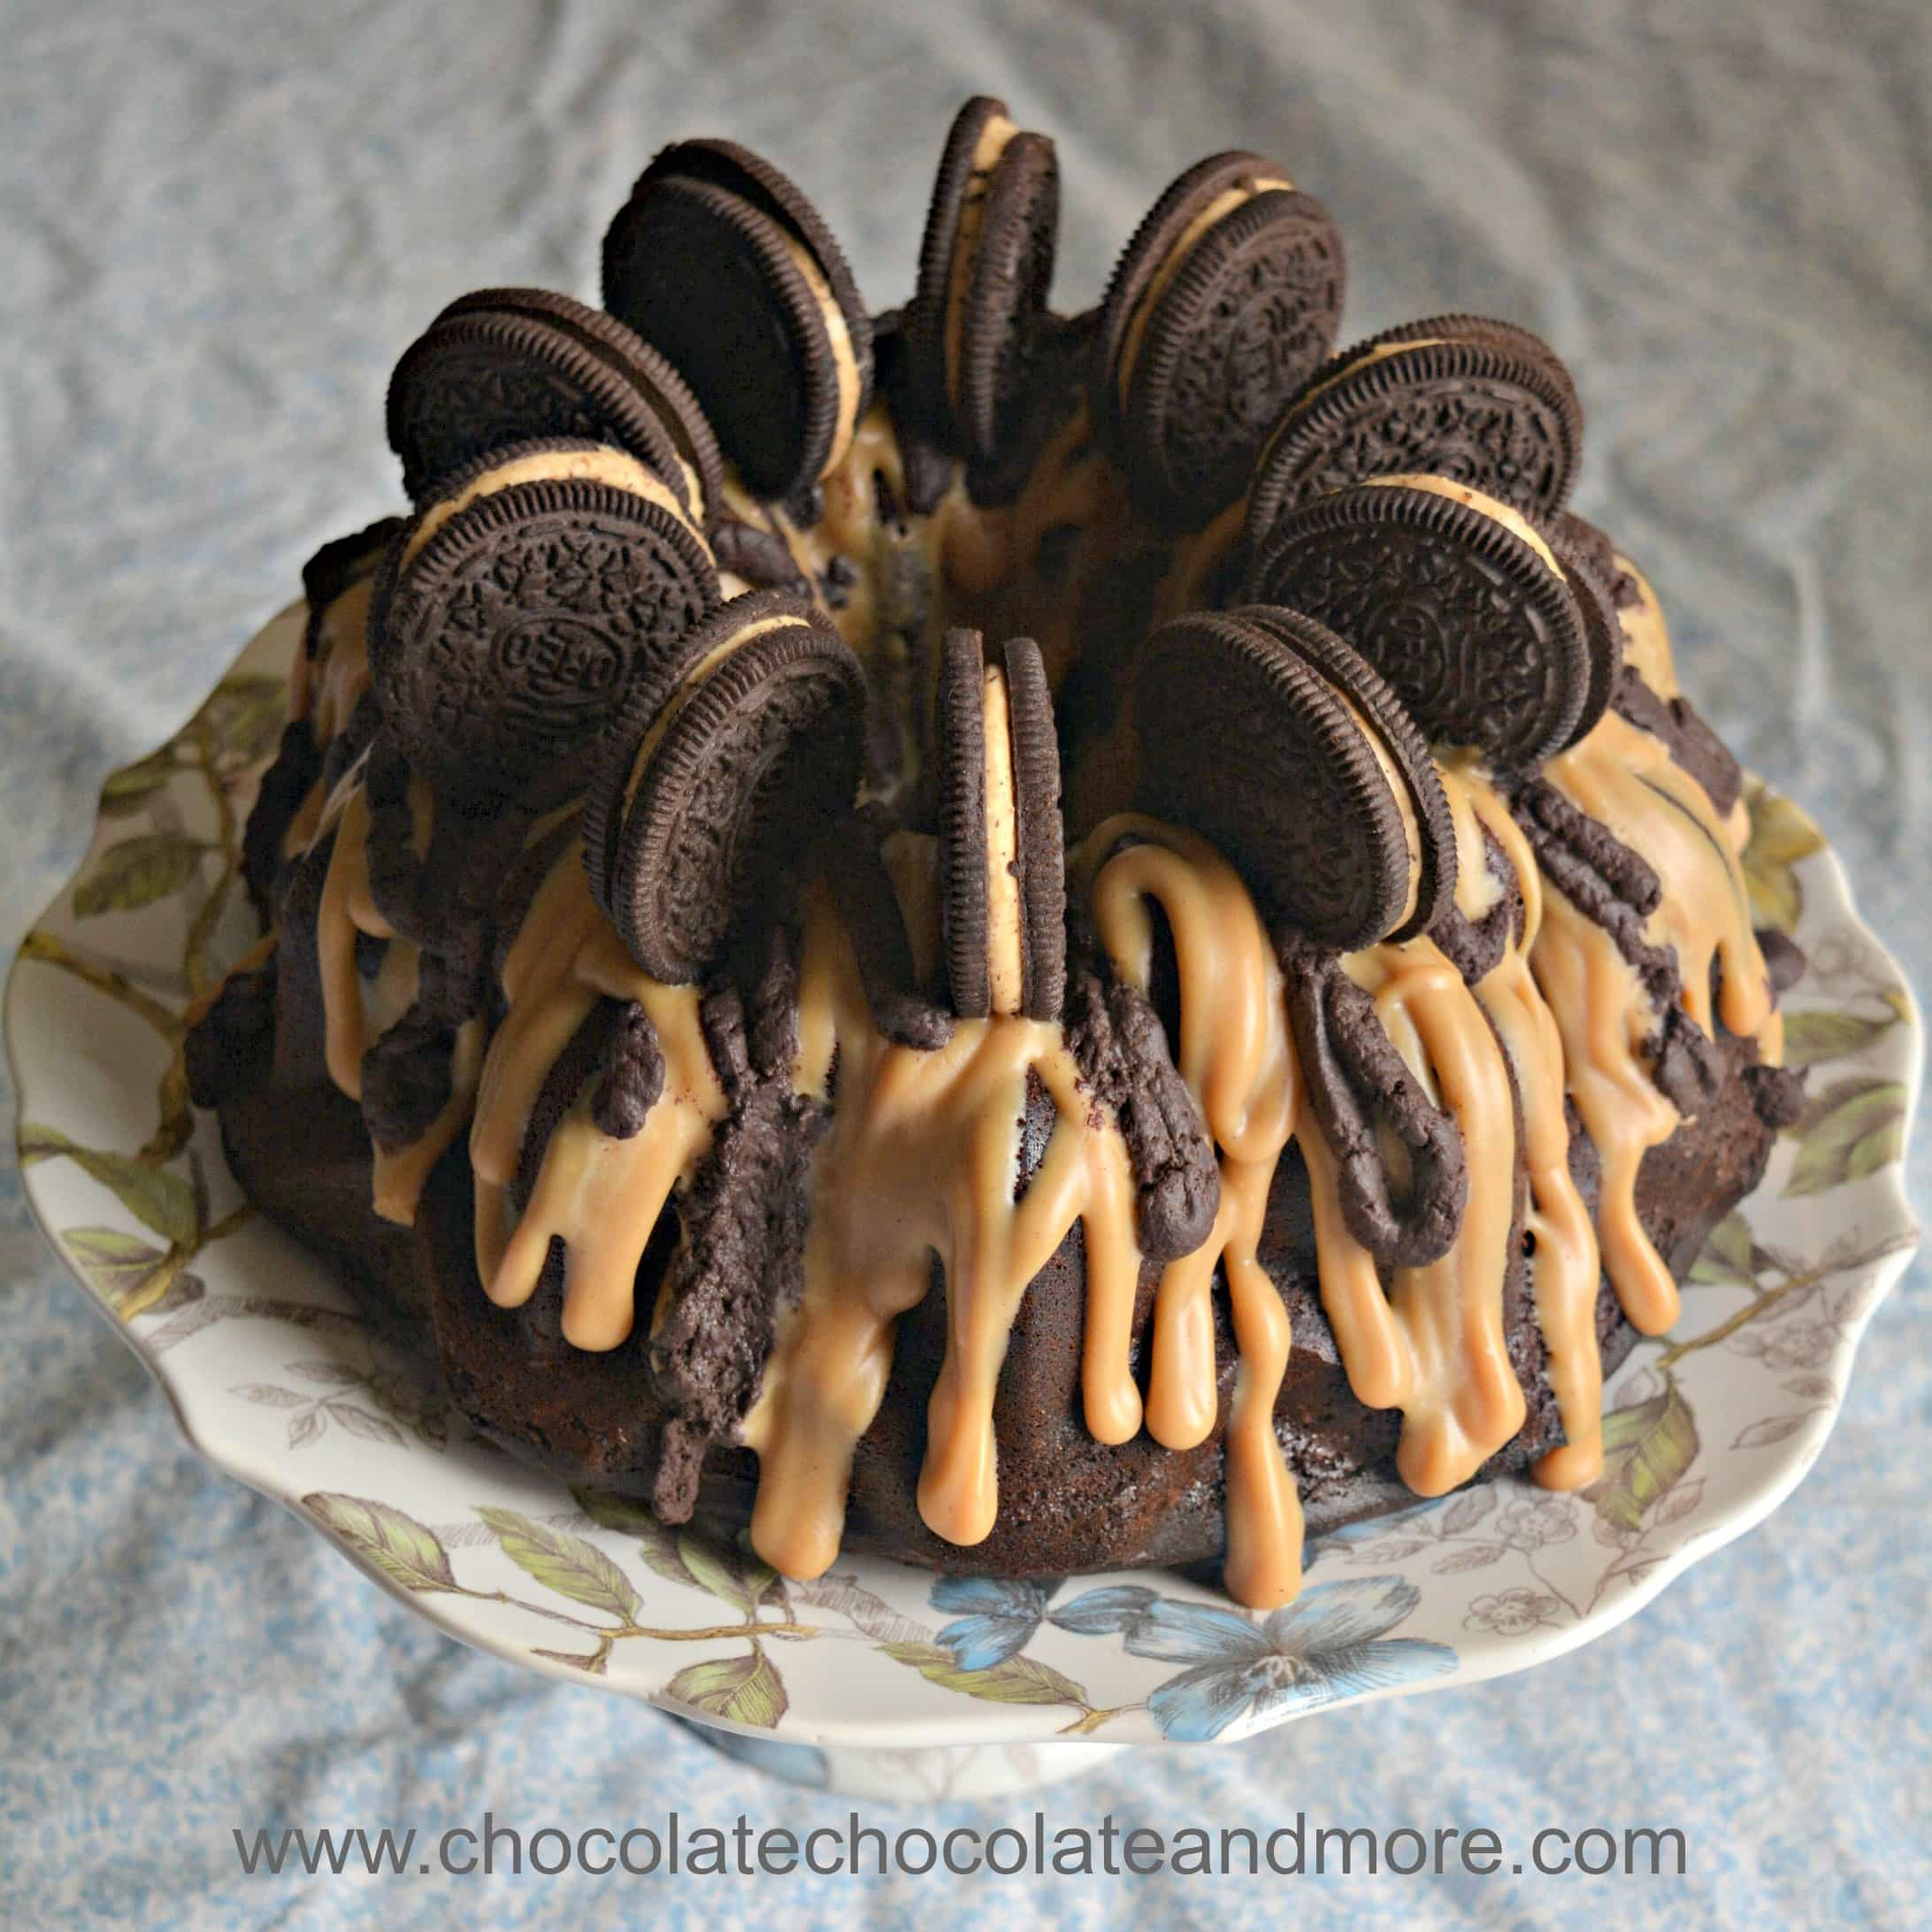 Peanut Butter Cheesecake Filled Chocolate Bundt Cake